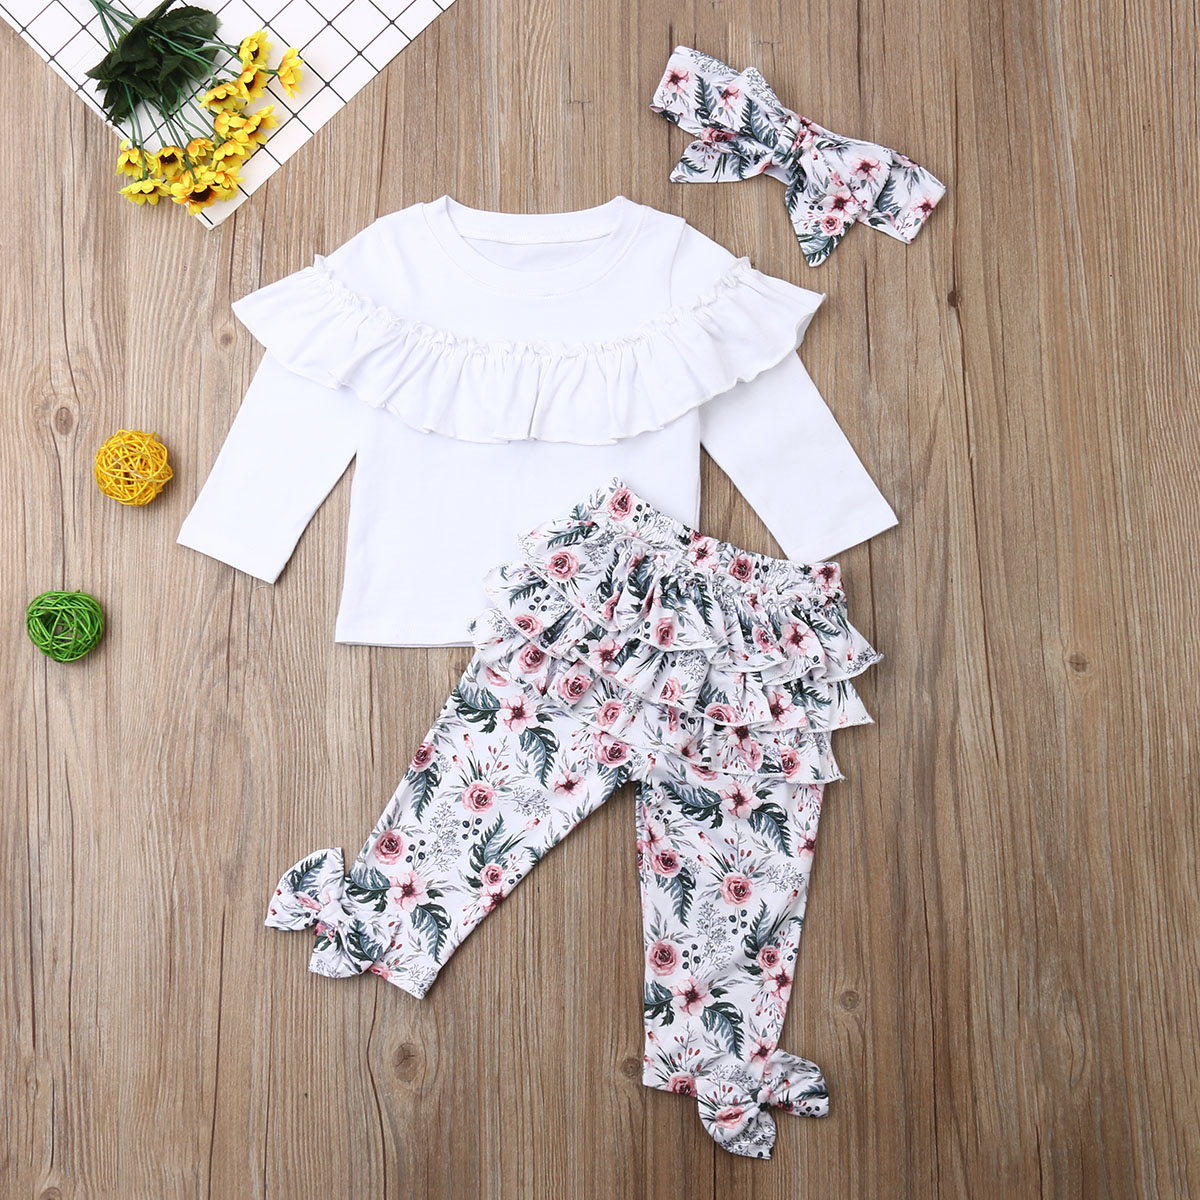 Toddler Kids Baby Girls Winter Clothes Frill Tops+Floral Pants+Headband Outfits